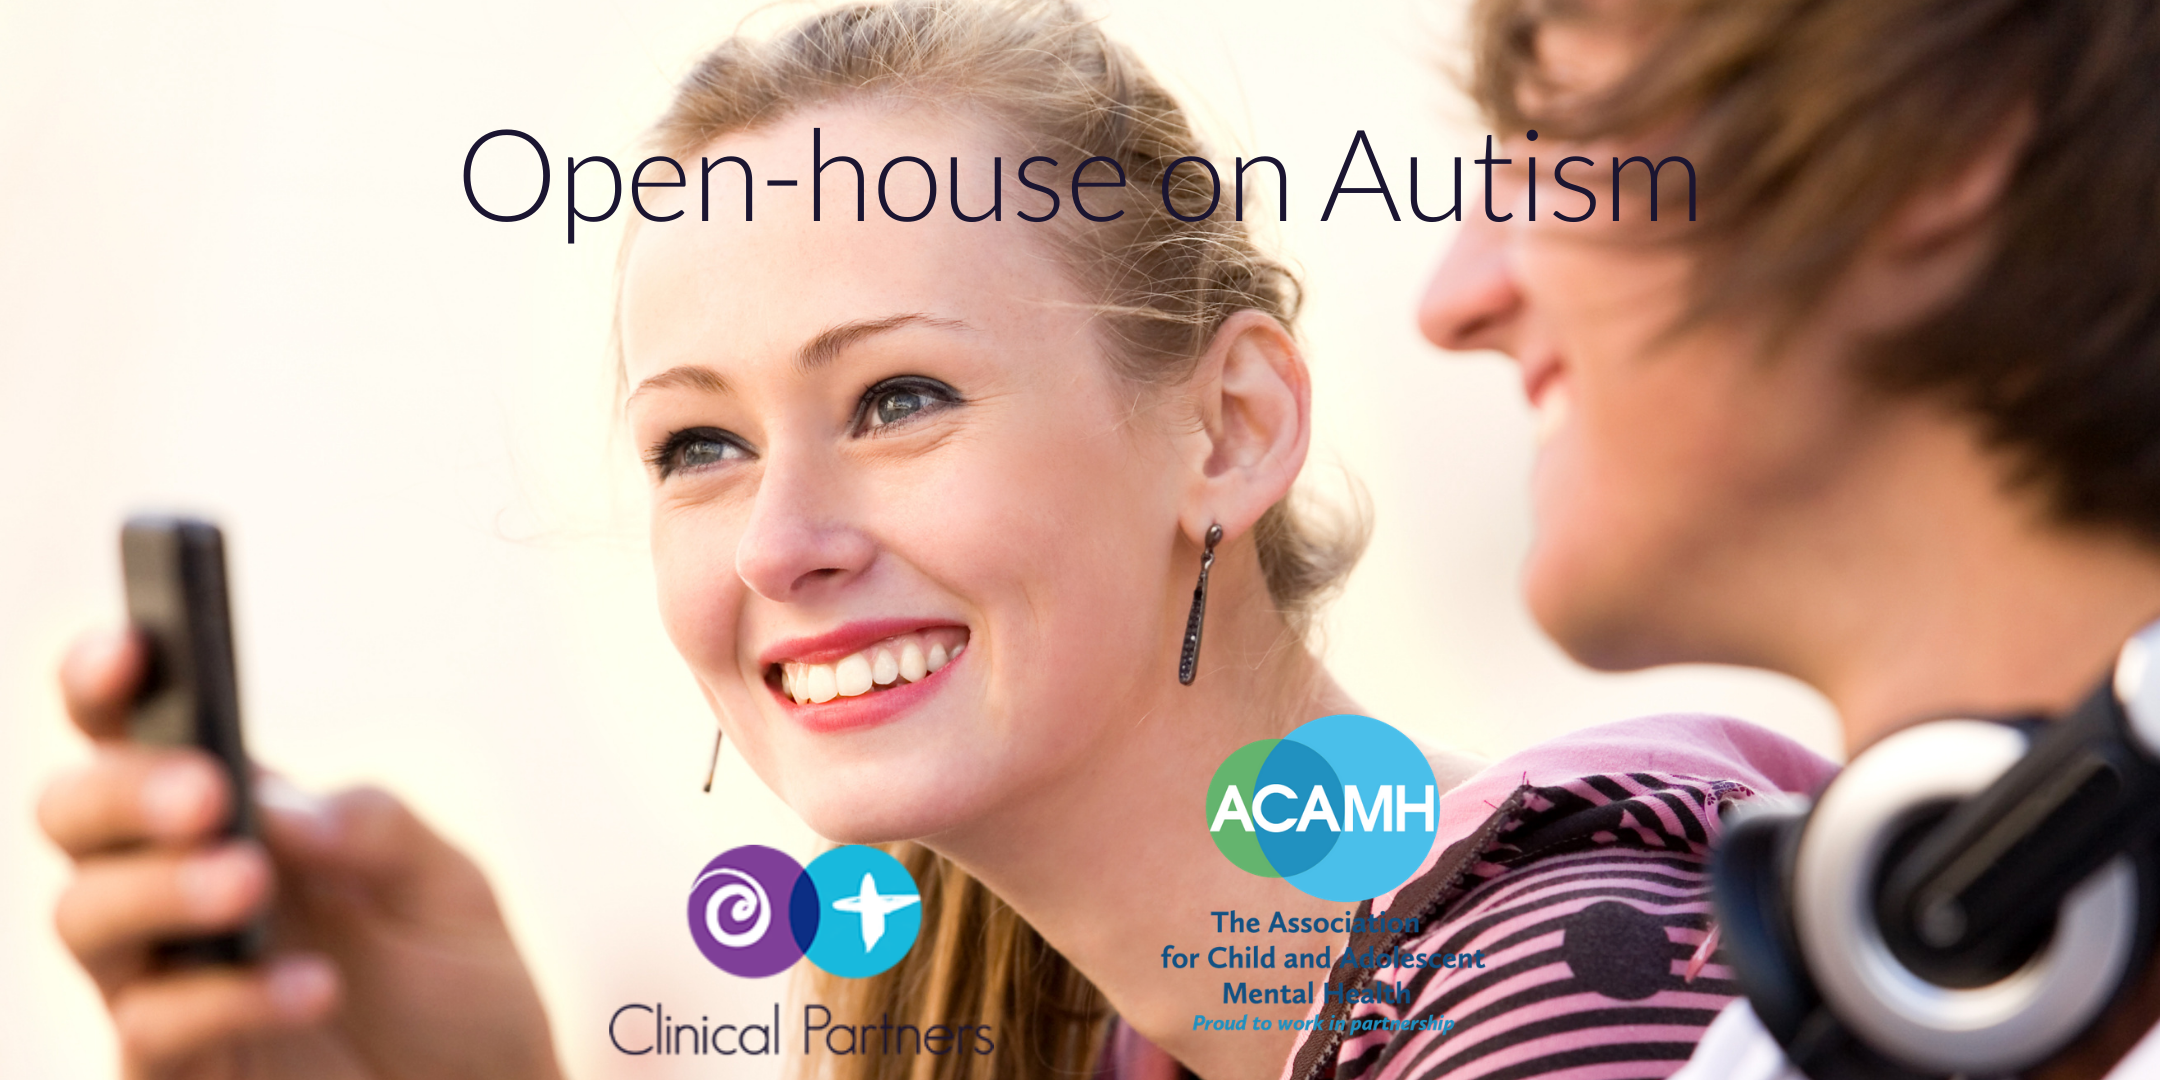 Copy of Openhouse on Autism 19